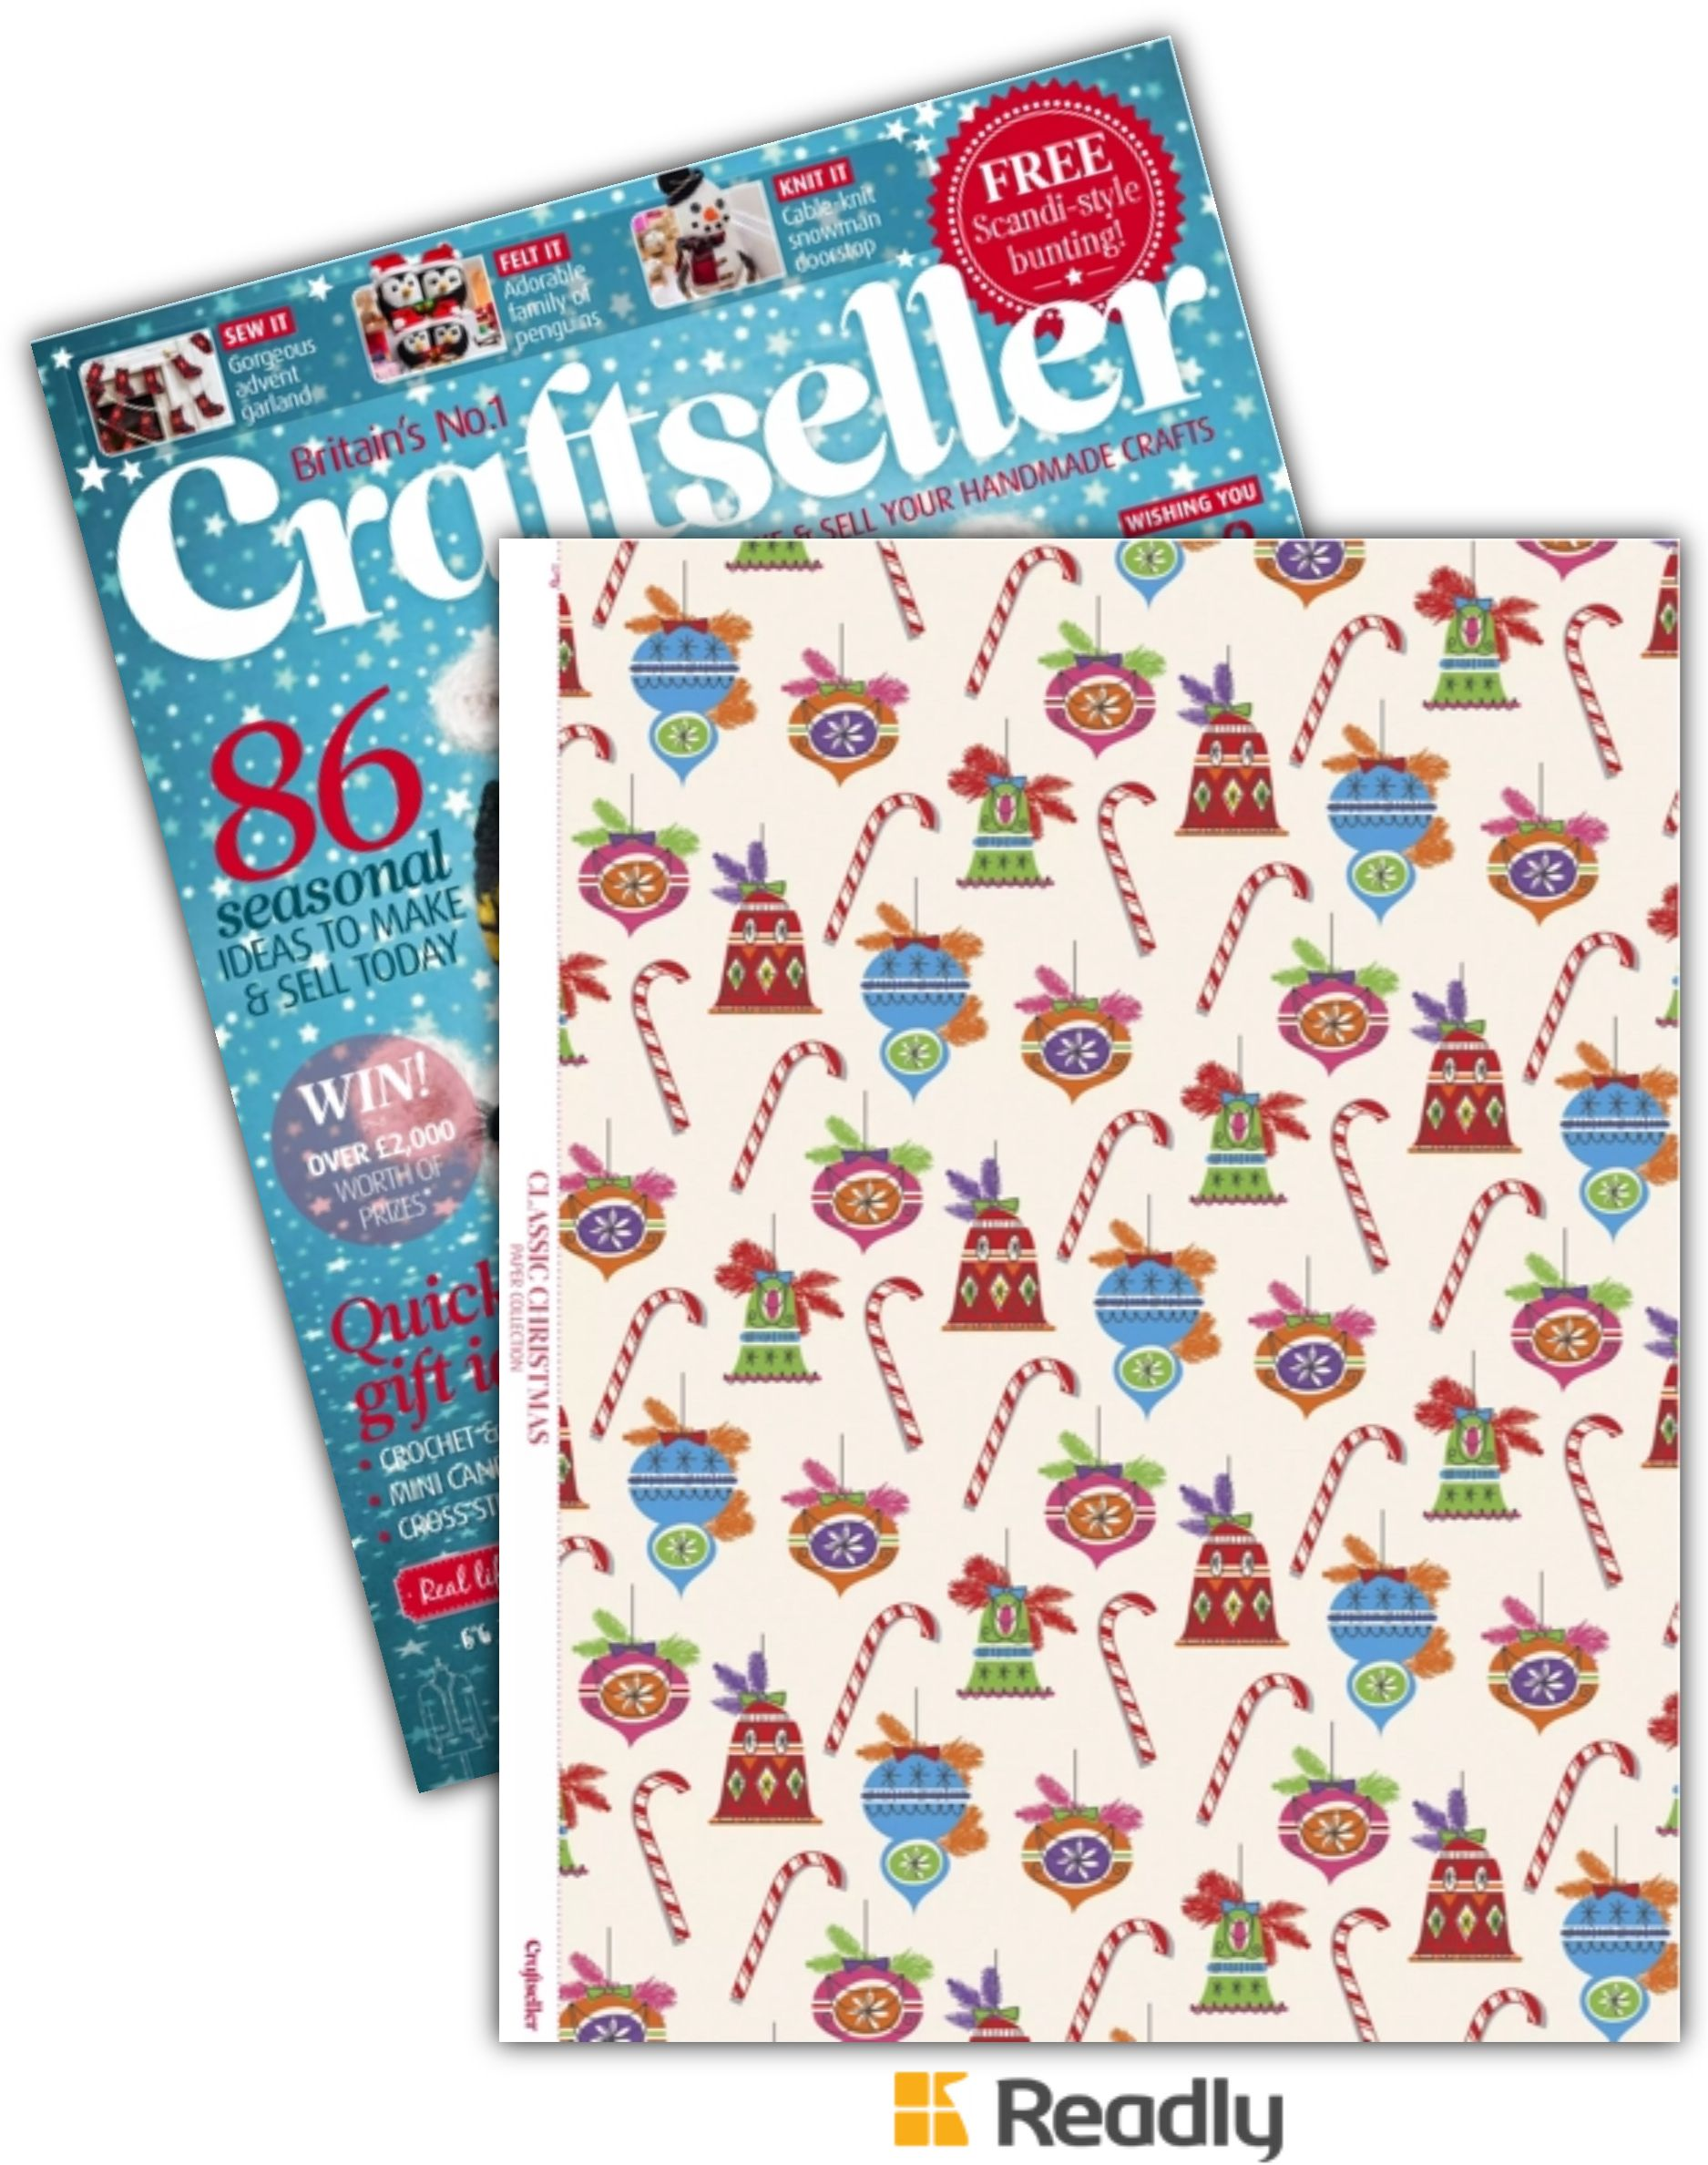 Suggestion about Craftseller Xmas 2015 page 51